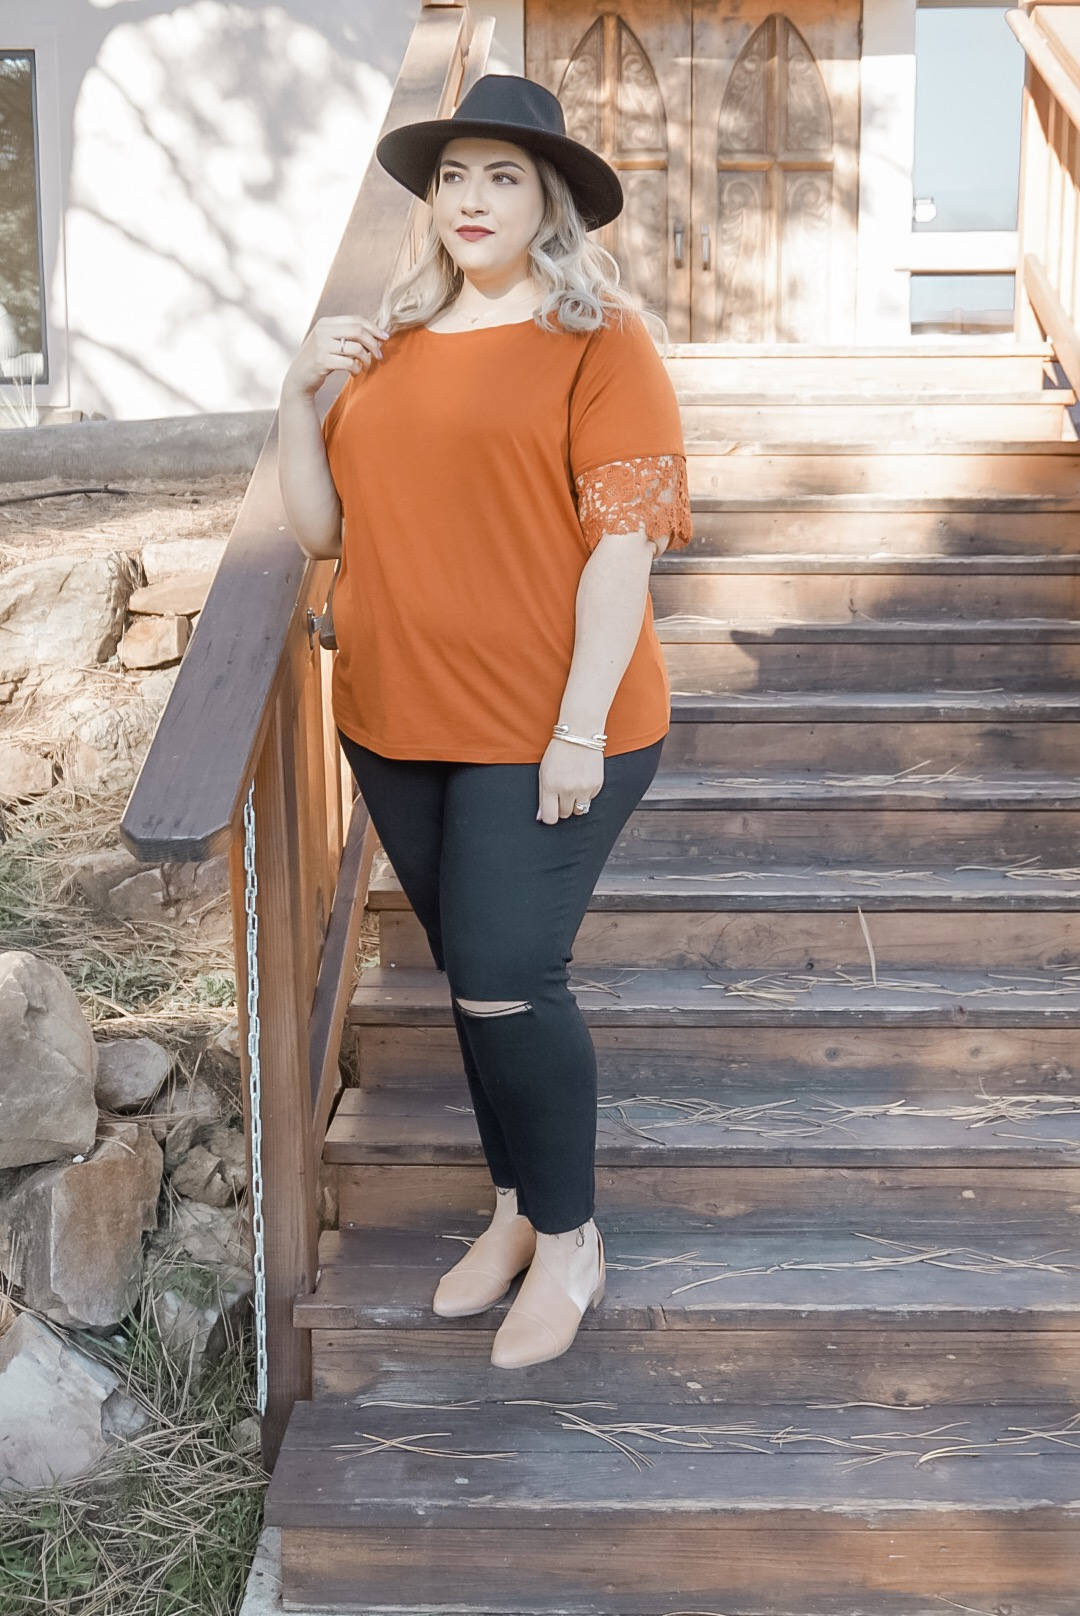 Fall Fashion Essentials // Plus Size Clothing For Women // Fall Fashion Outfit Ideas // Affordable Fashion for Women // How To Style A Hat | Beauty With Lily